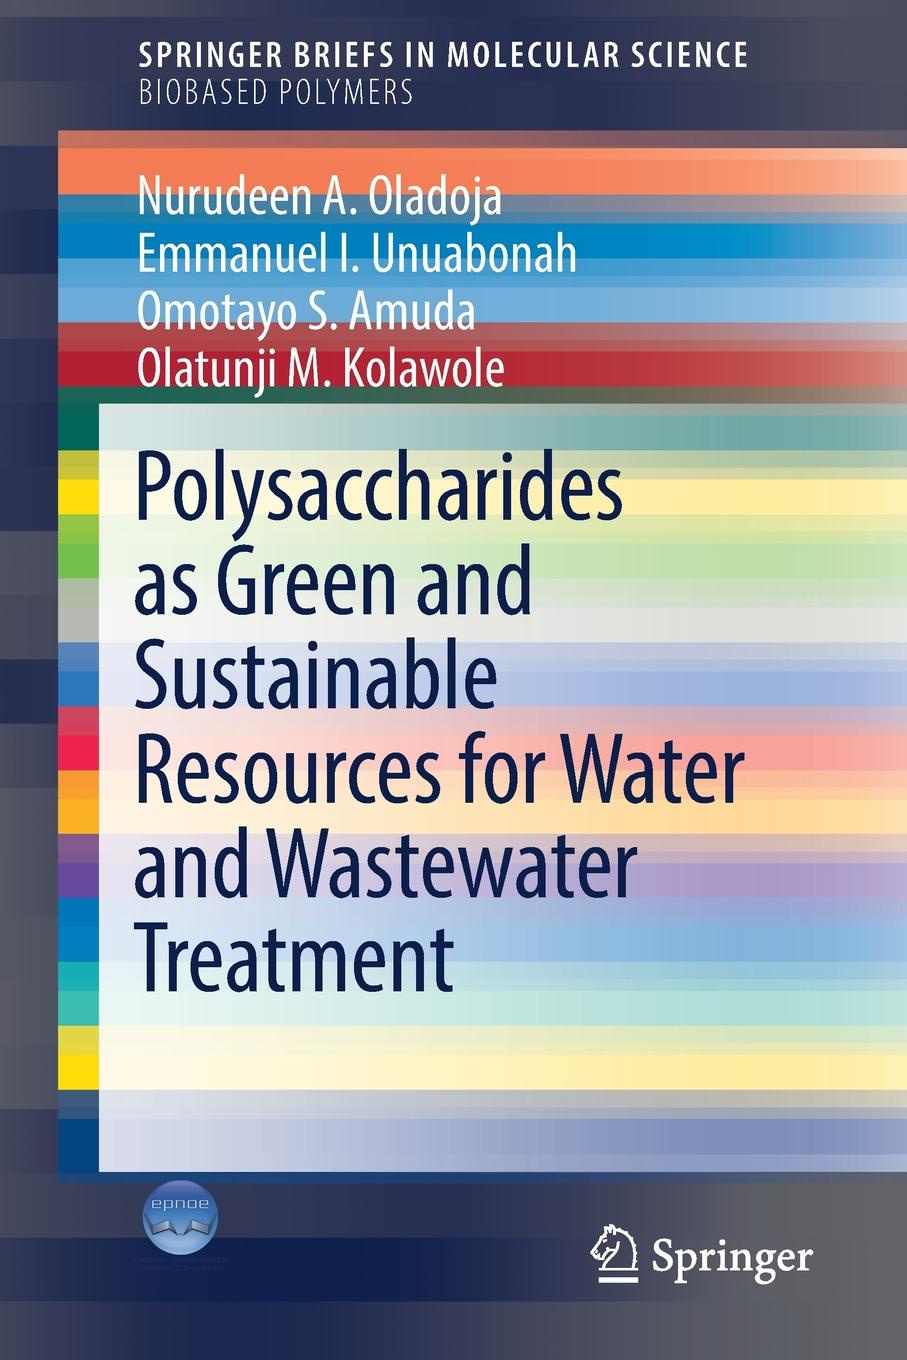 Nurudeen A. Oladoja, Emmanuel I. Unuabonah, OMOTAYO S. AMUDA Polysaccharides as a Green and Sustainable Resources for Water and Wastewater Treatment цена и фото